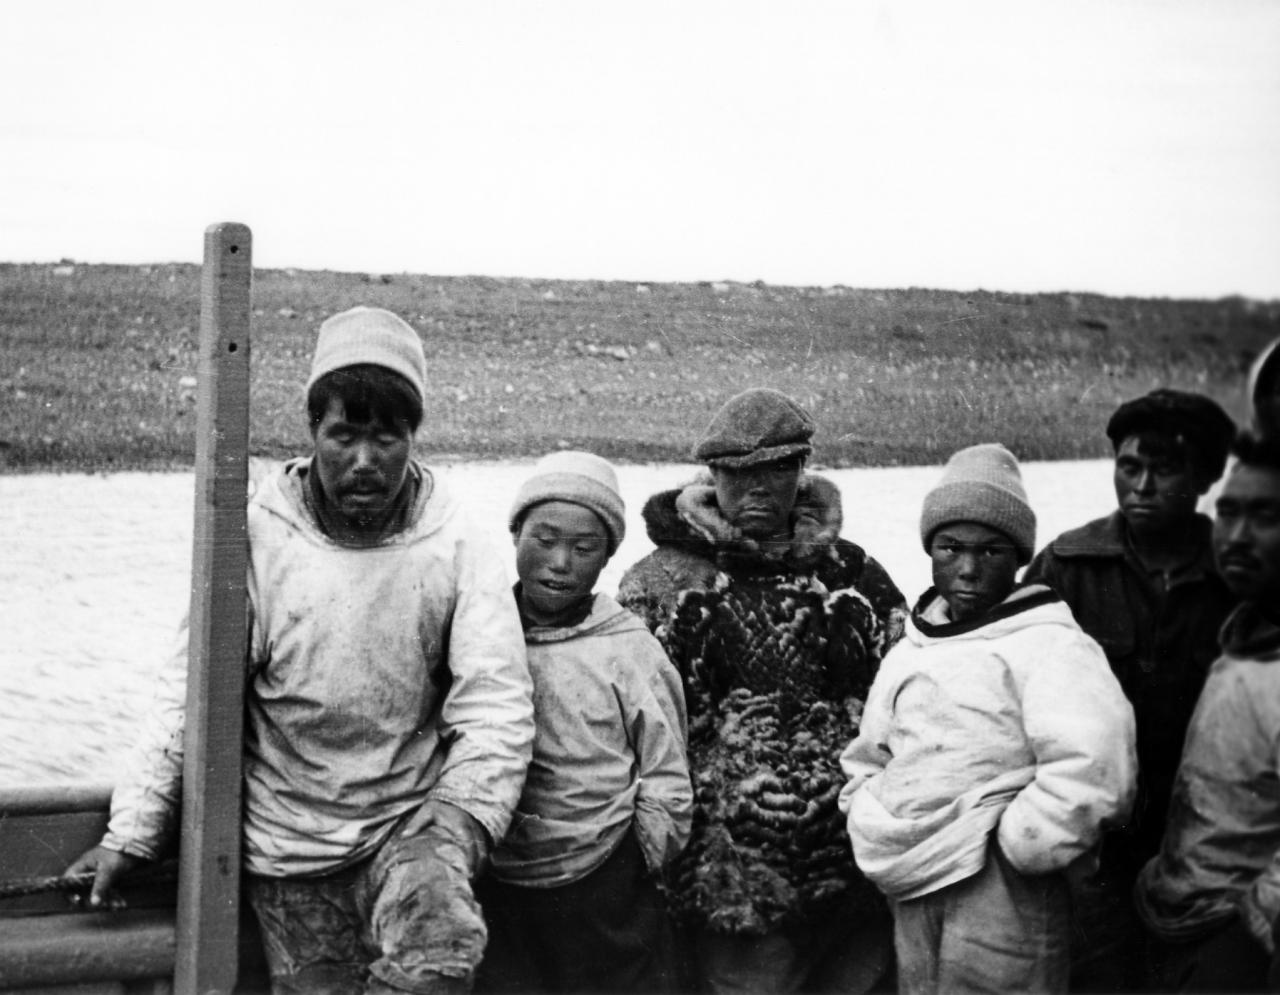 Black and white picture of six Inuit who seem to be waiting. They are outside, leaning against a handrail.